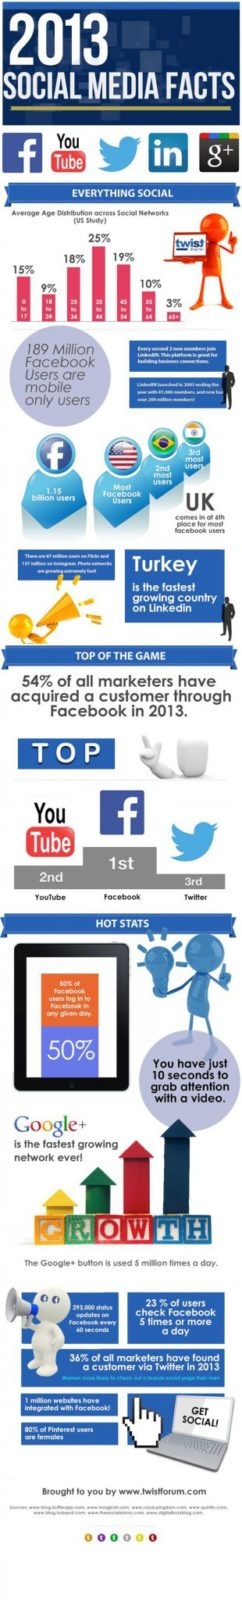 Social Media Facts 2013 - Infographic